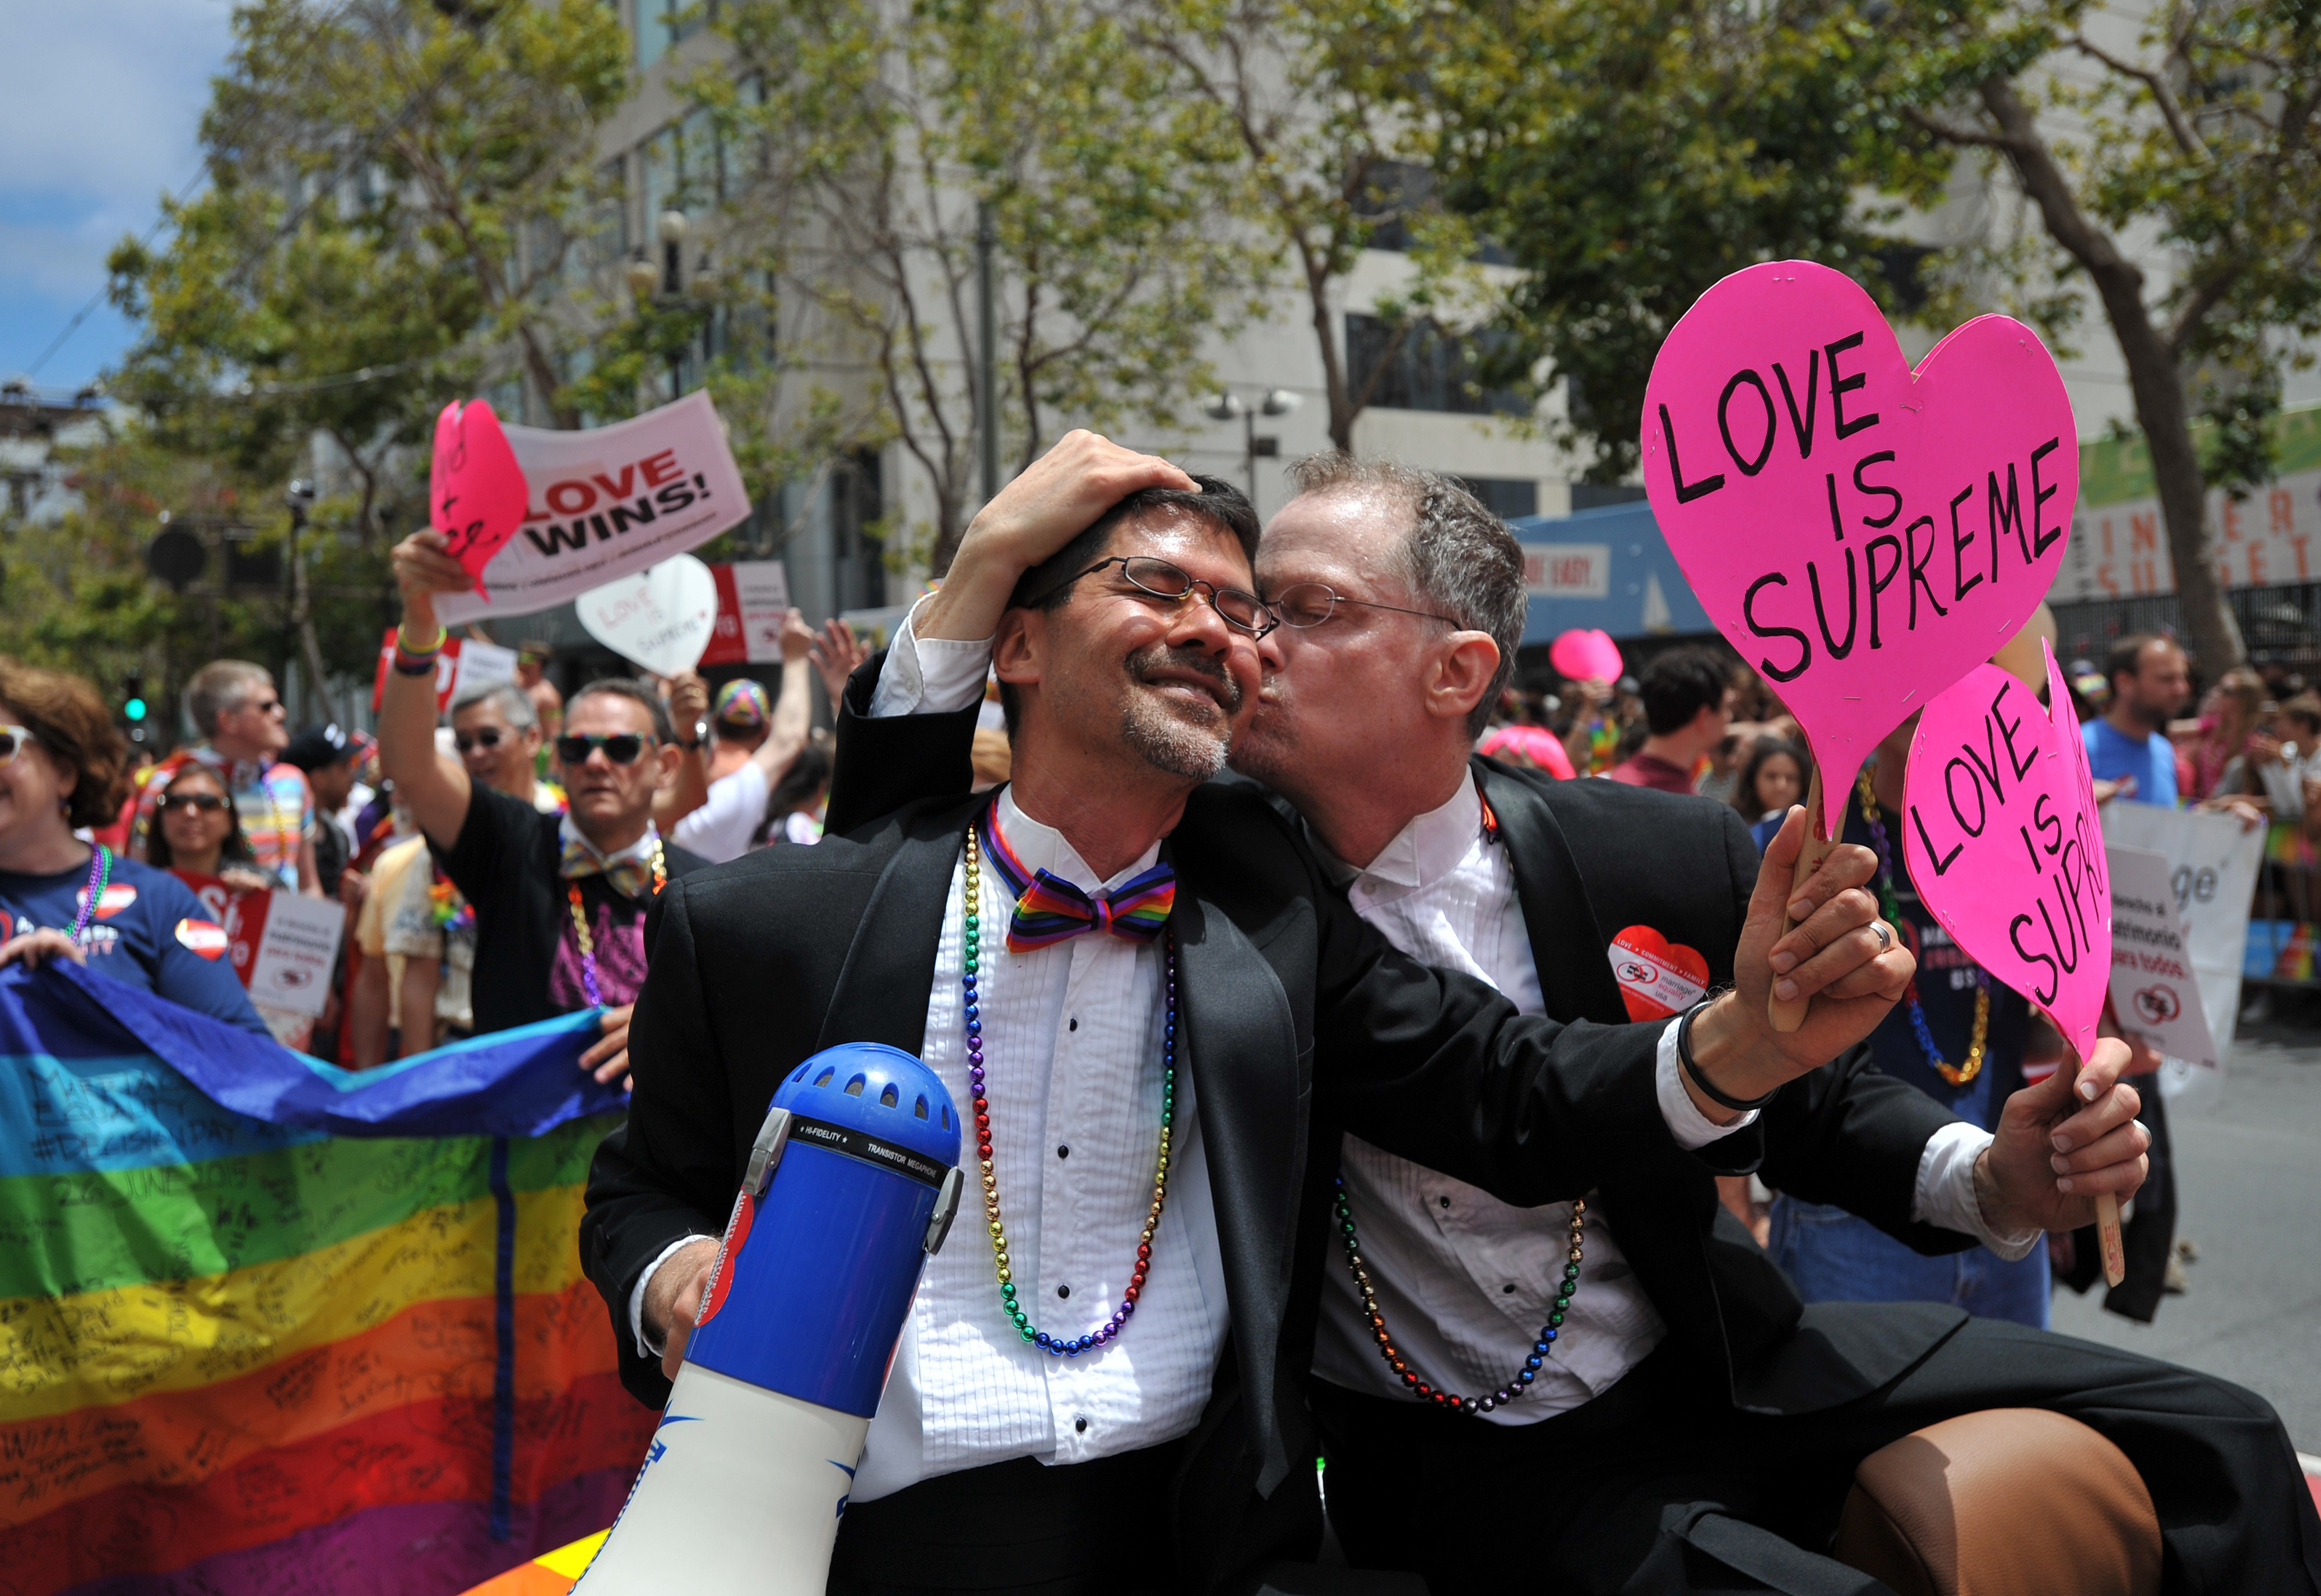 Stuart Gaffney (L) and John Lewis, plaintiffs  in the 2008 Defense of Marriage Act (DOMA) case, celebrate while traveling along Market Street during the annual Gay Pride Parade in San Francisco, California on June 28, 2015, two days after  the US Supreme Court's landmark ruling legalizing same-sex marriage nationwide.